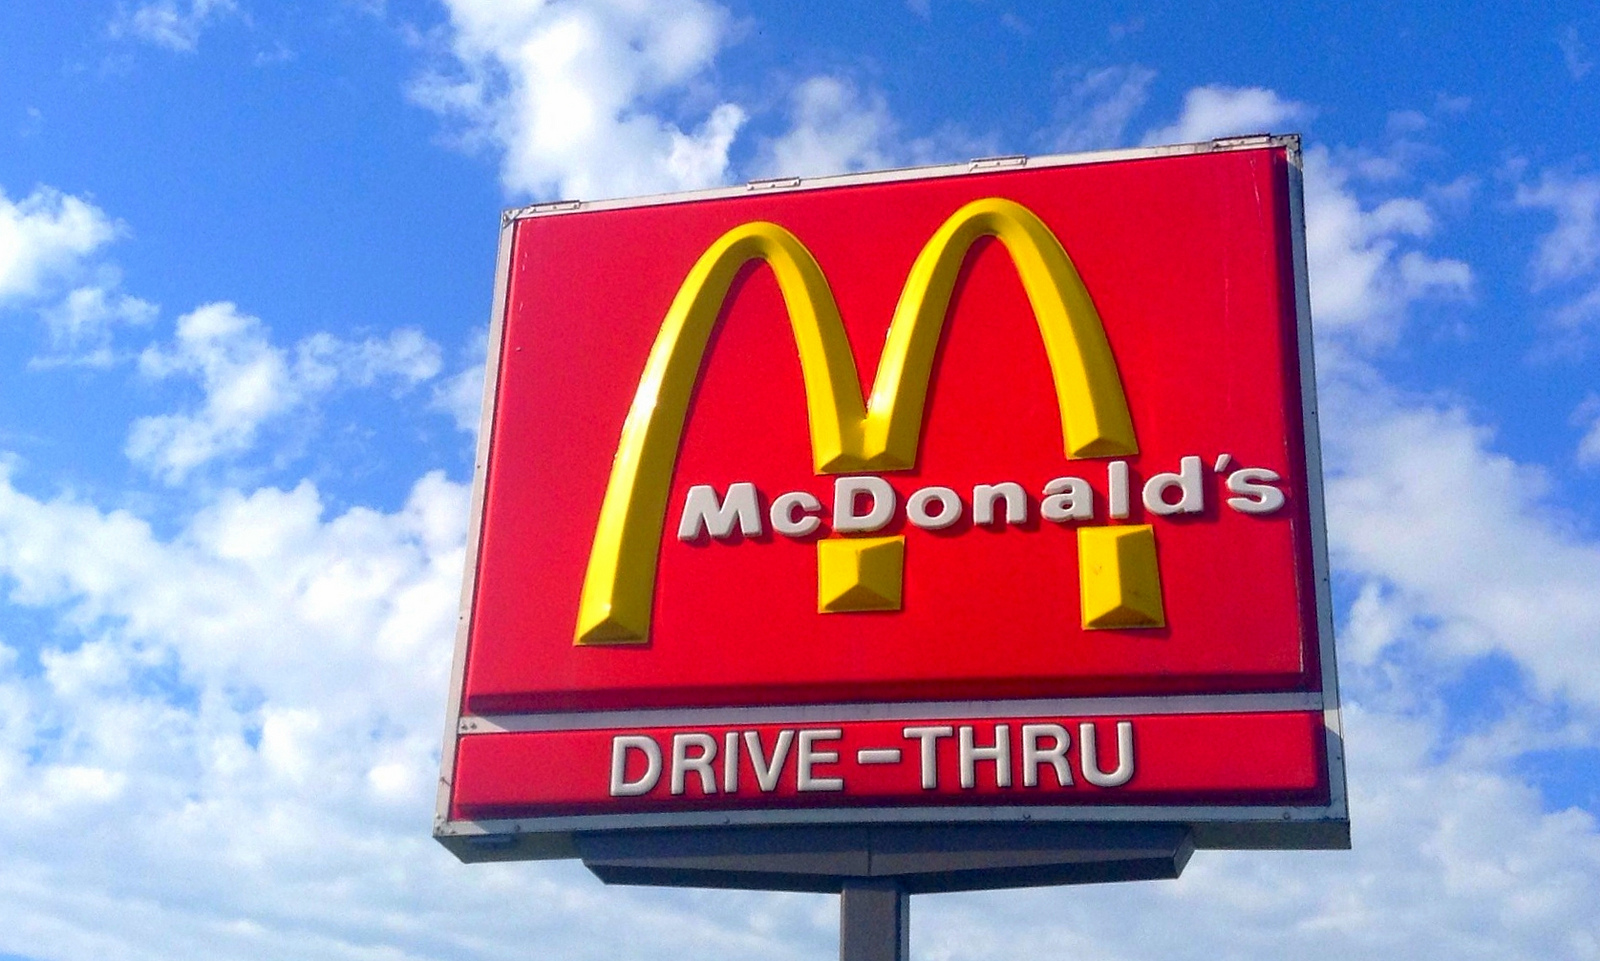 Red and yellow McDonald's golden arches sign